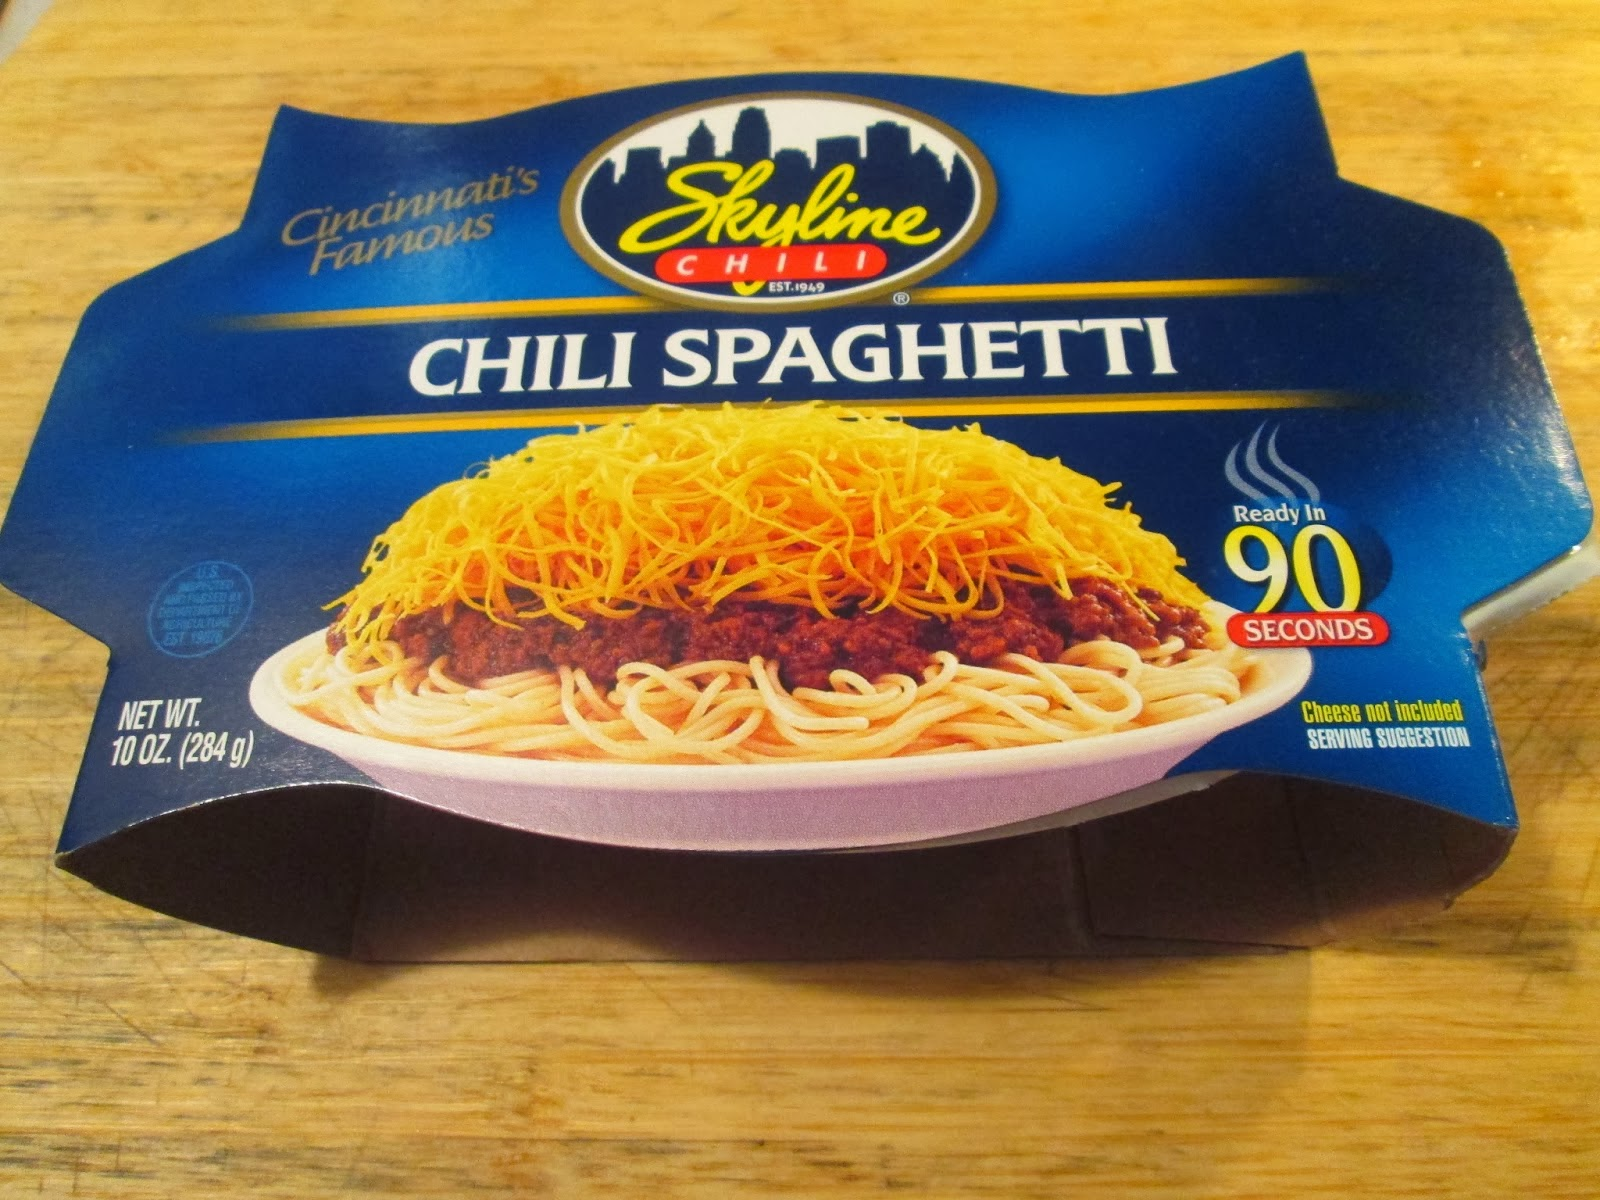 ... Skyline 3 Way – Chili, Spaghetti, Cheese w/ Side of Oyster Crackers